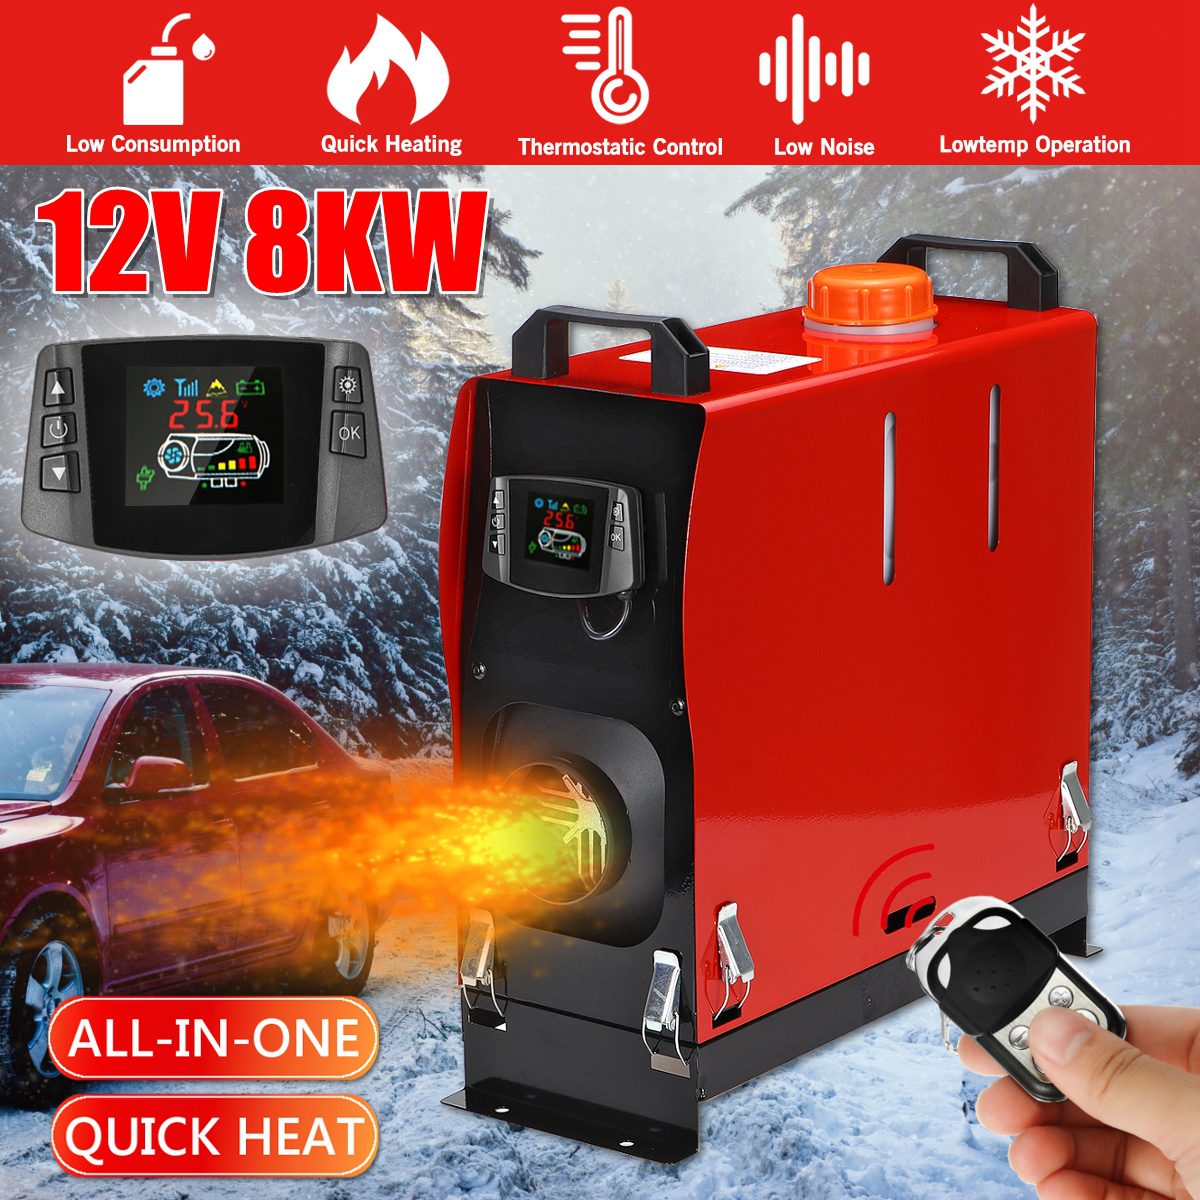 Hcalory Car Heater All In One 8kW Air diesels Heater Red 8KW 12V One Hole Car Heater for webasto Trucks Motor+LCD key Switch